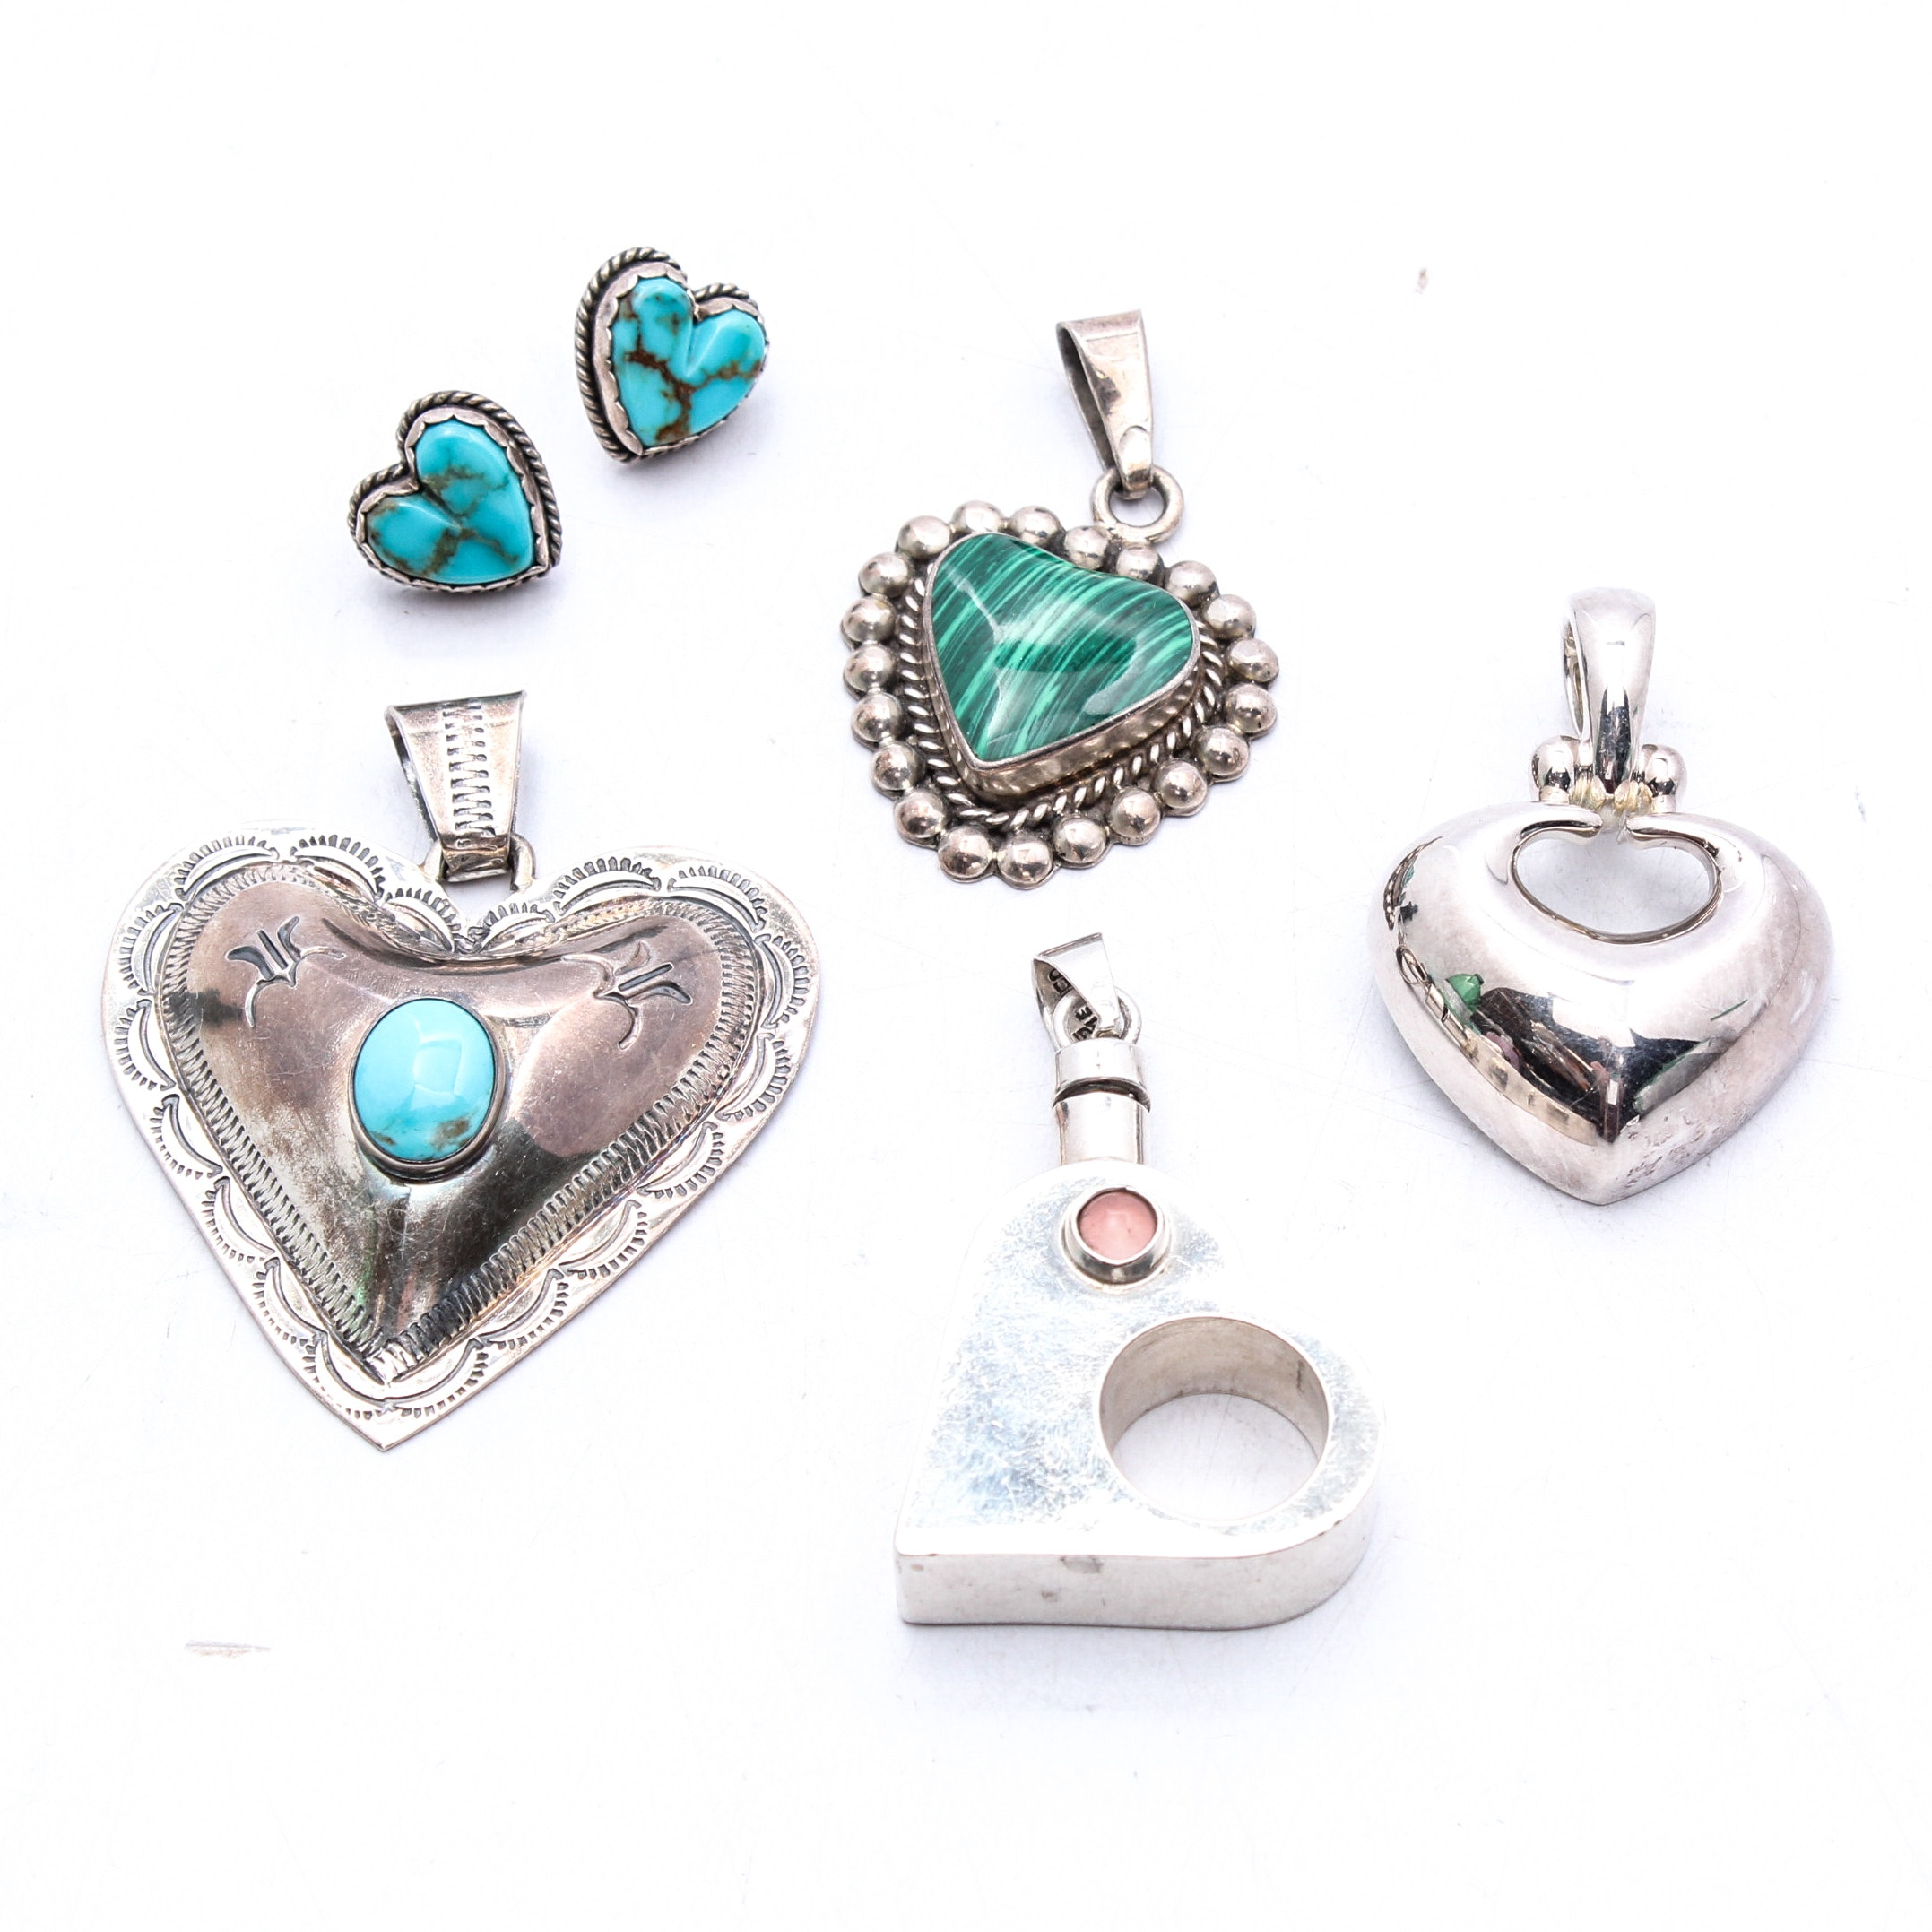 Sterling Silver Heart Shaped Jewelry Featuring Taxco, Esposito